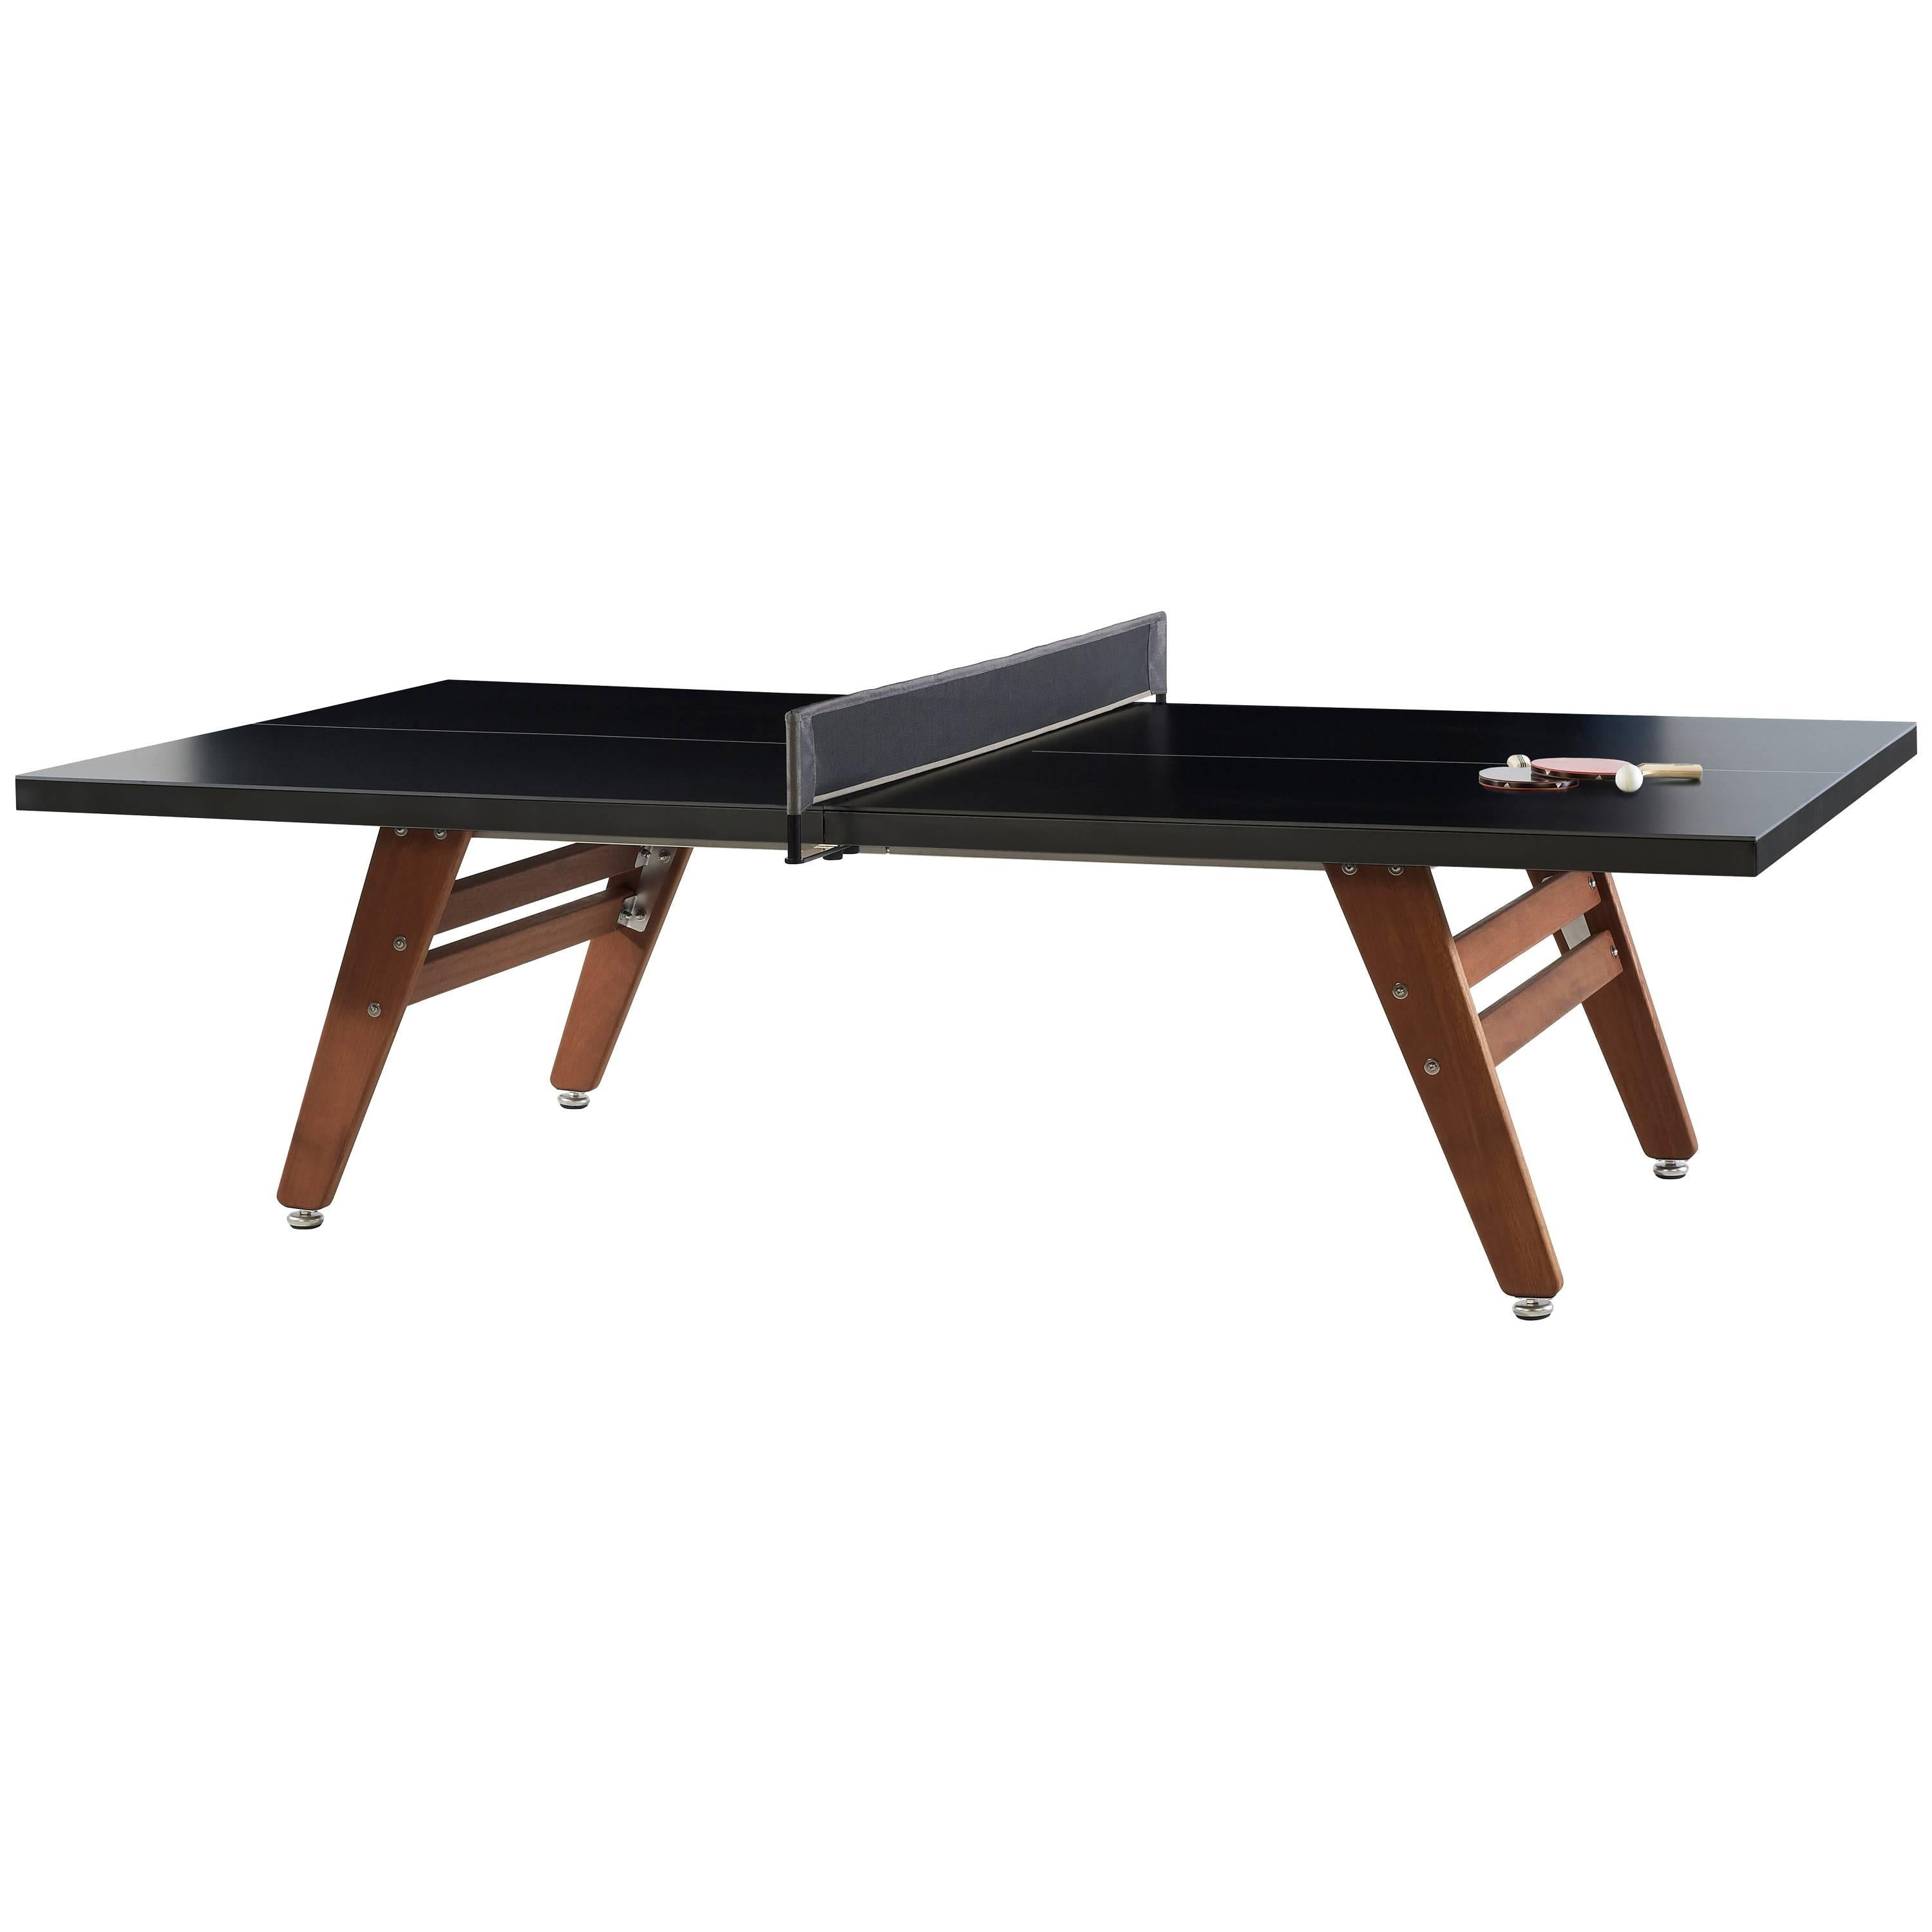 RS Stationary Ping Pong Table in Black by RS Barcelona